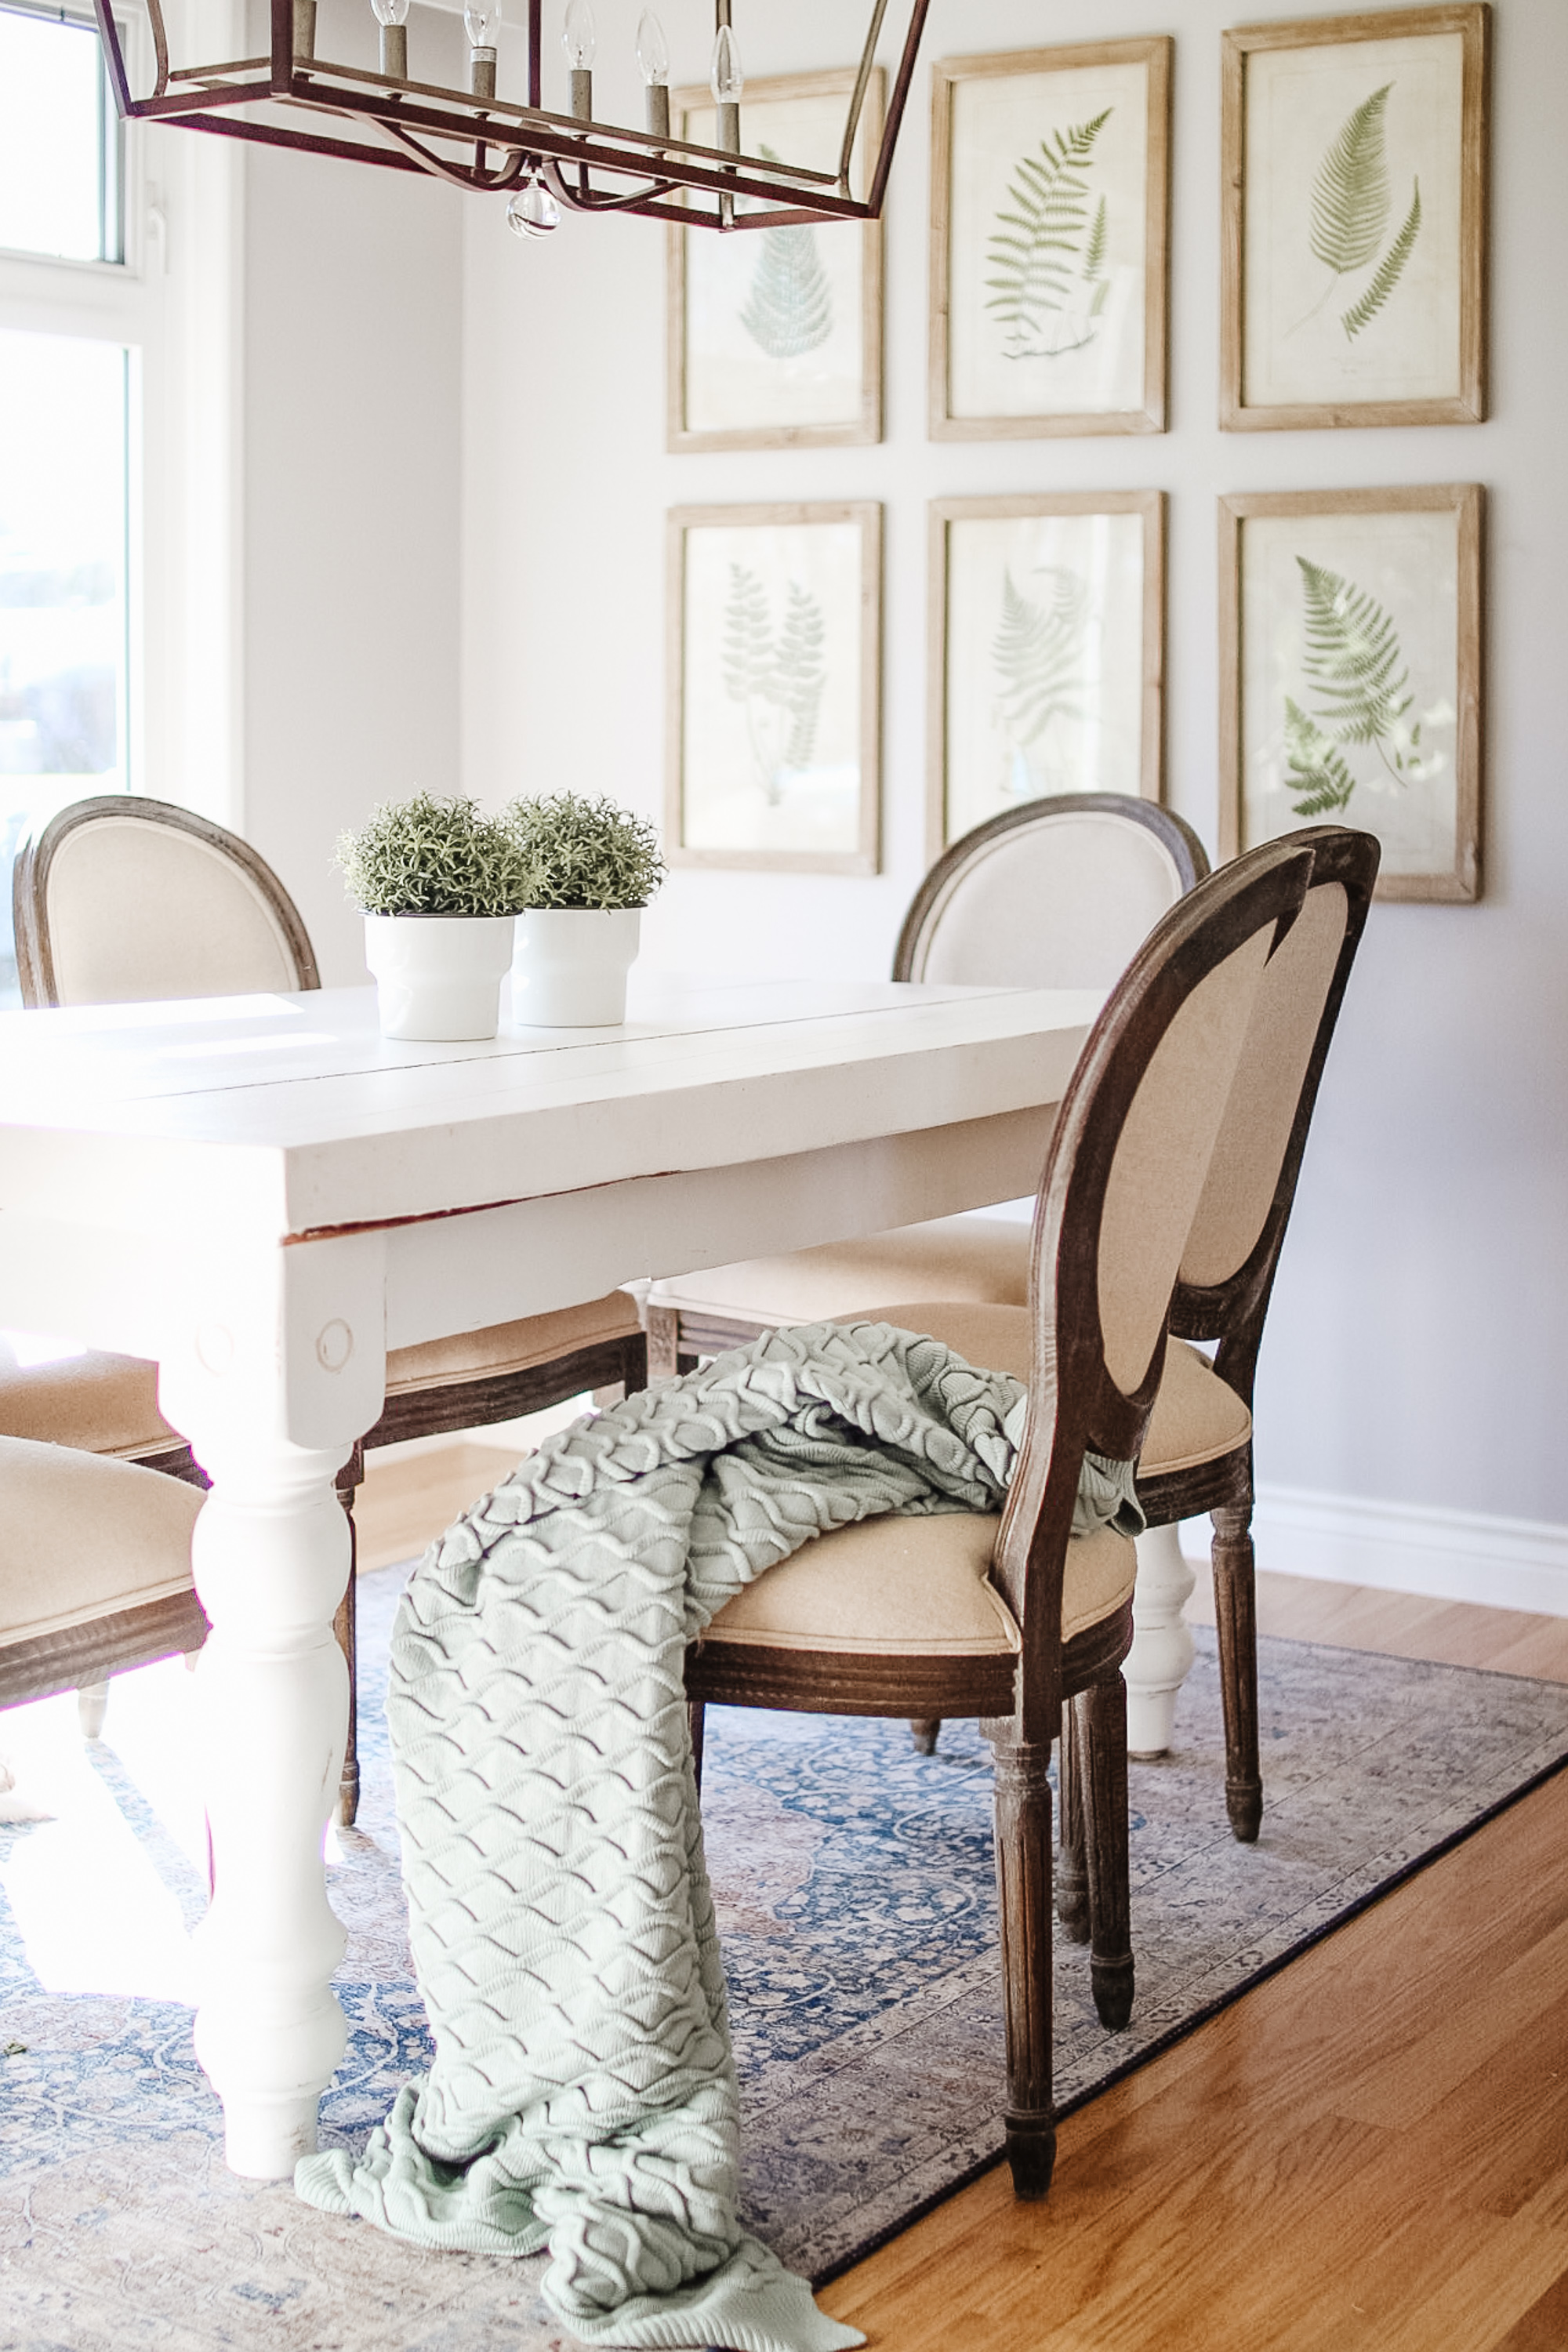 @jessicasaramorris's cover photo for 'A Mini Revamp In The Dining Room & Living Room'